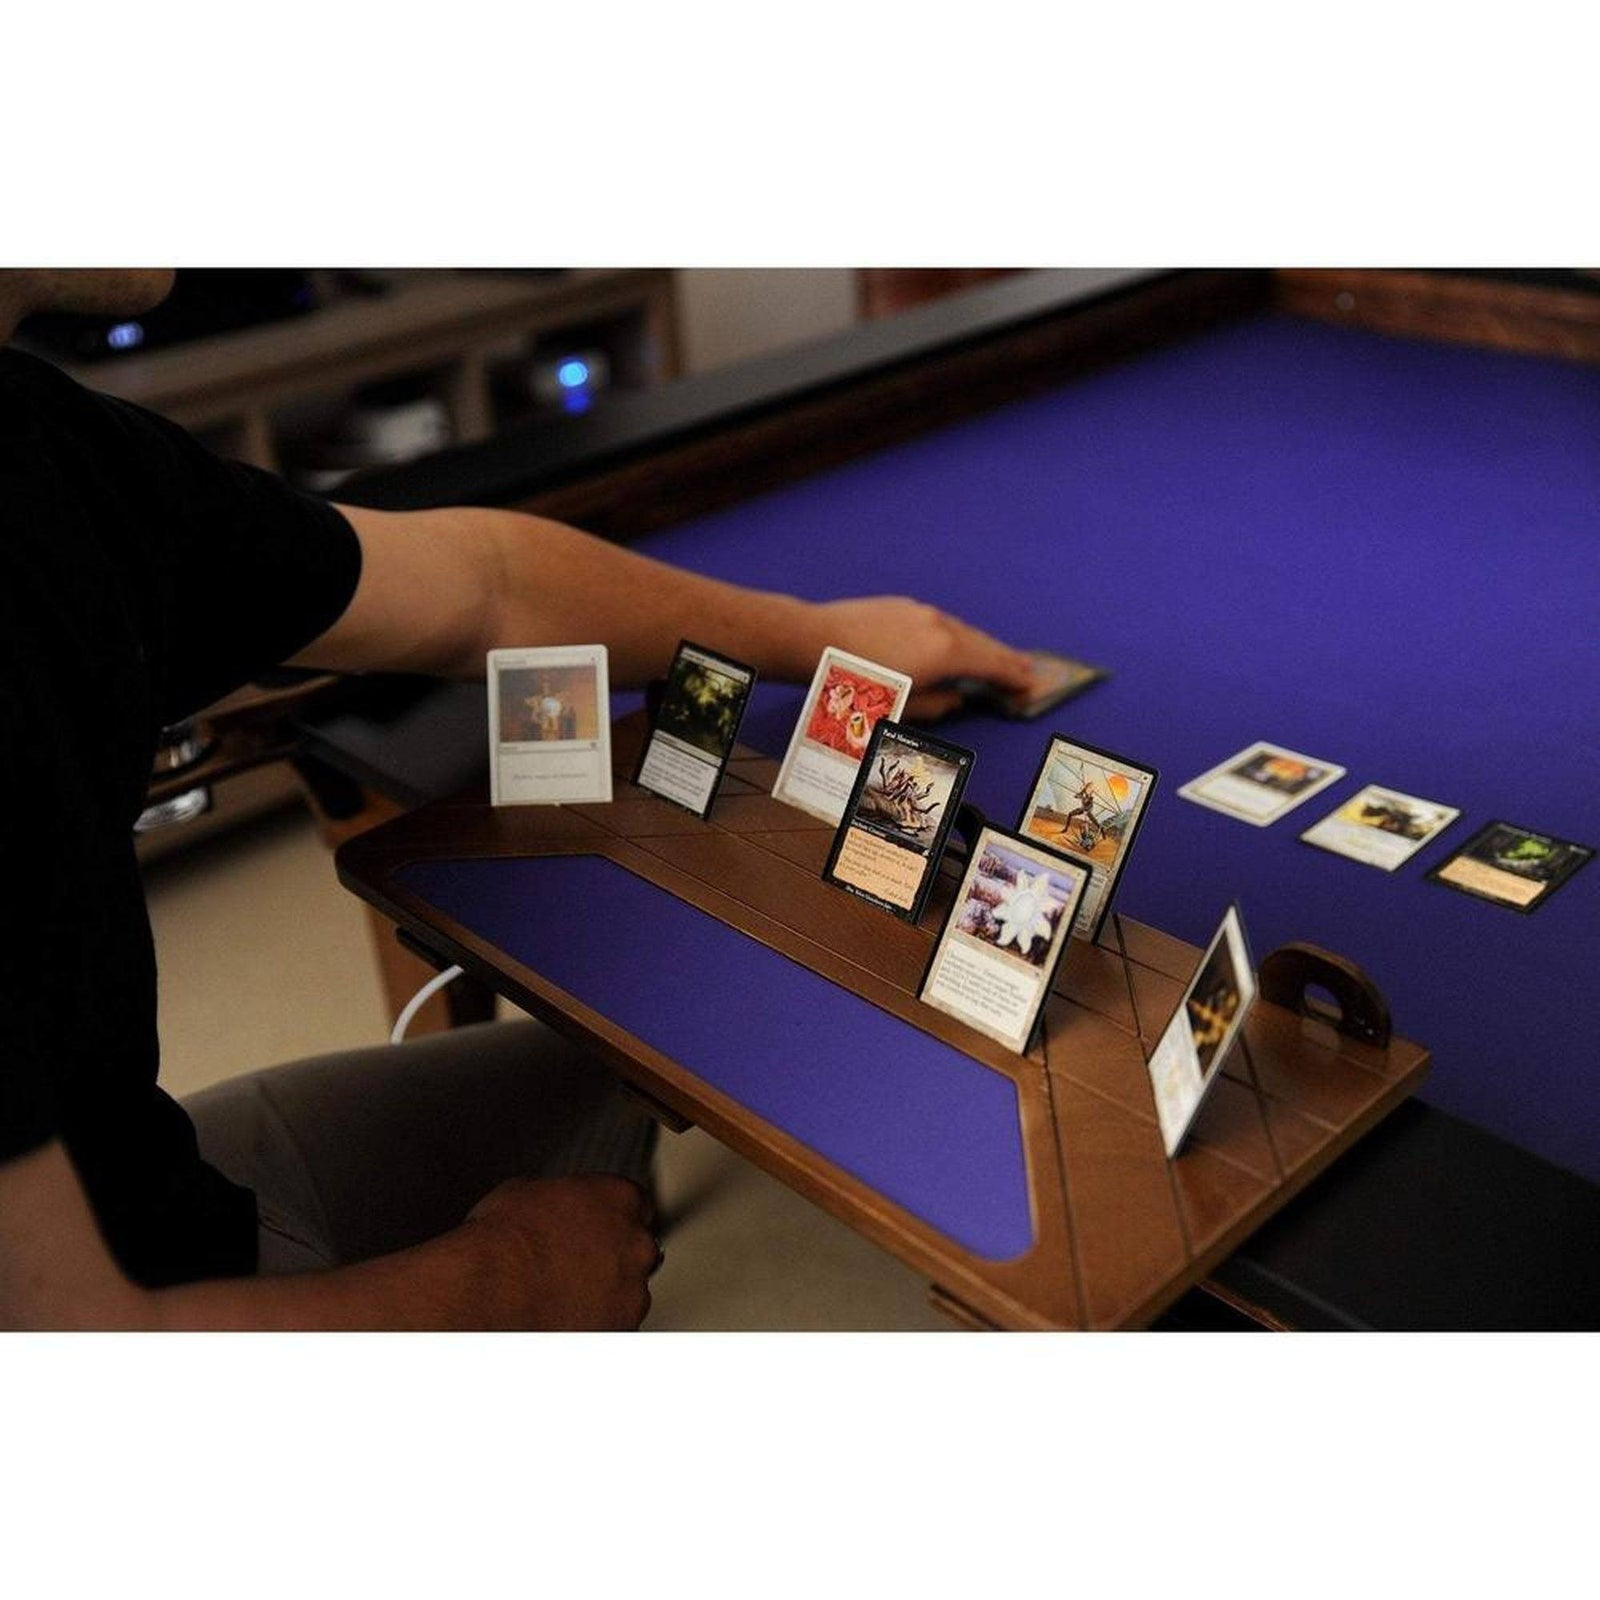 Elite Series Accessory Mats - fits Elite Series accessories - Table of Ultimate Gaming